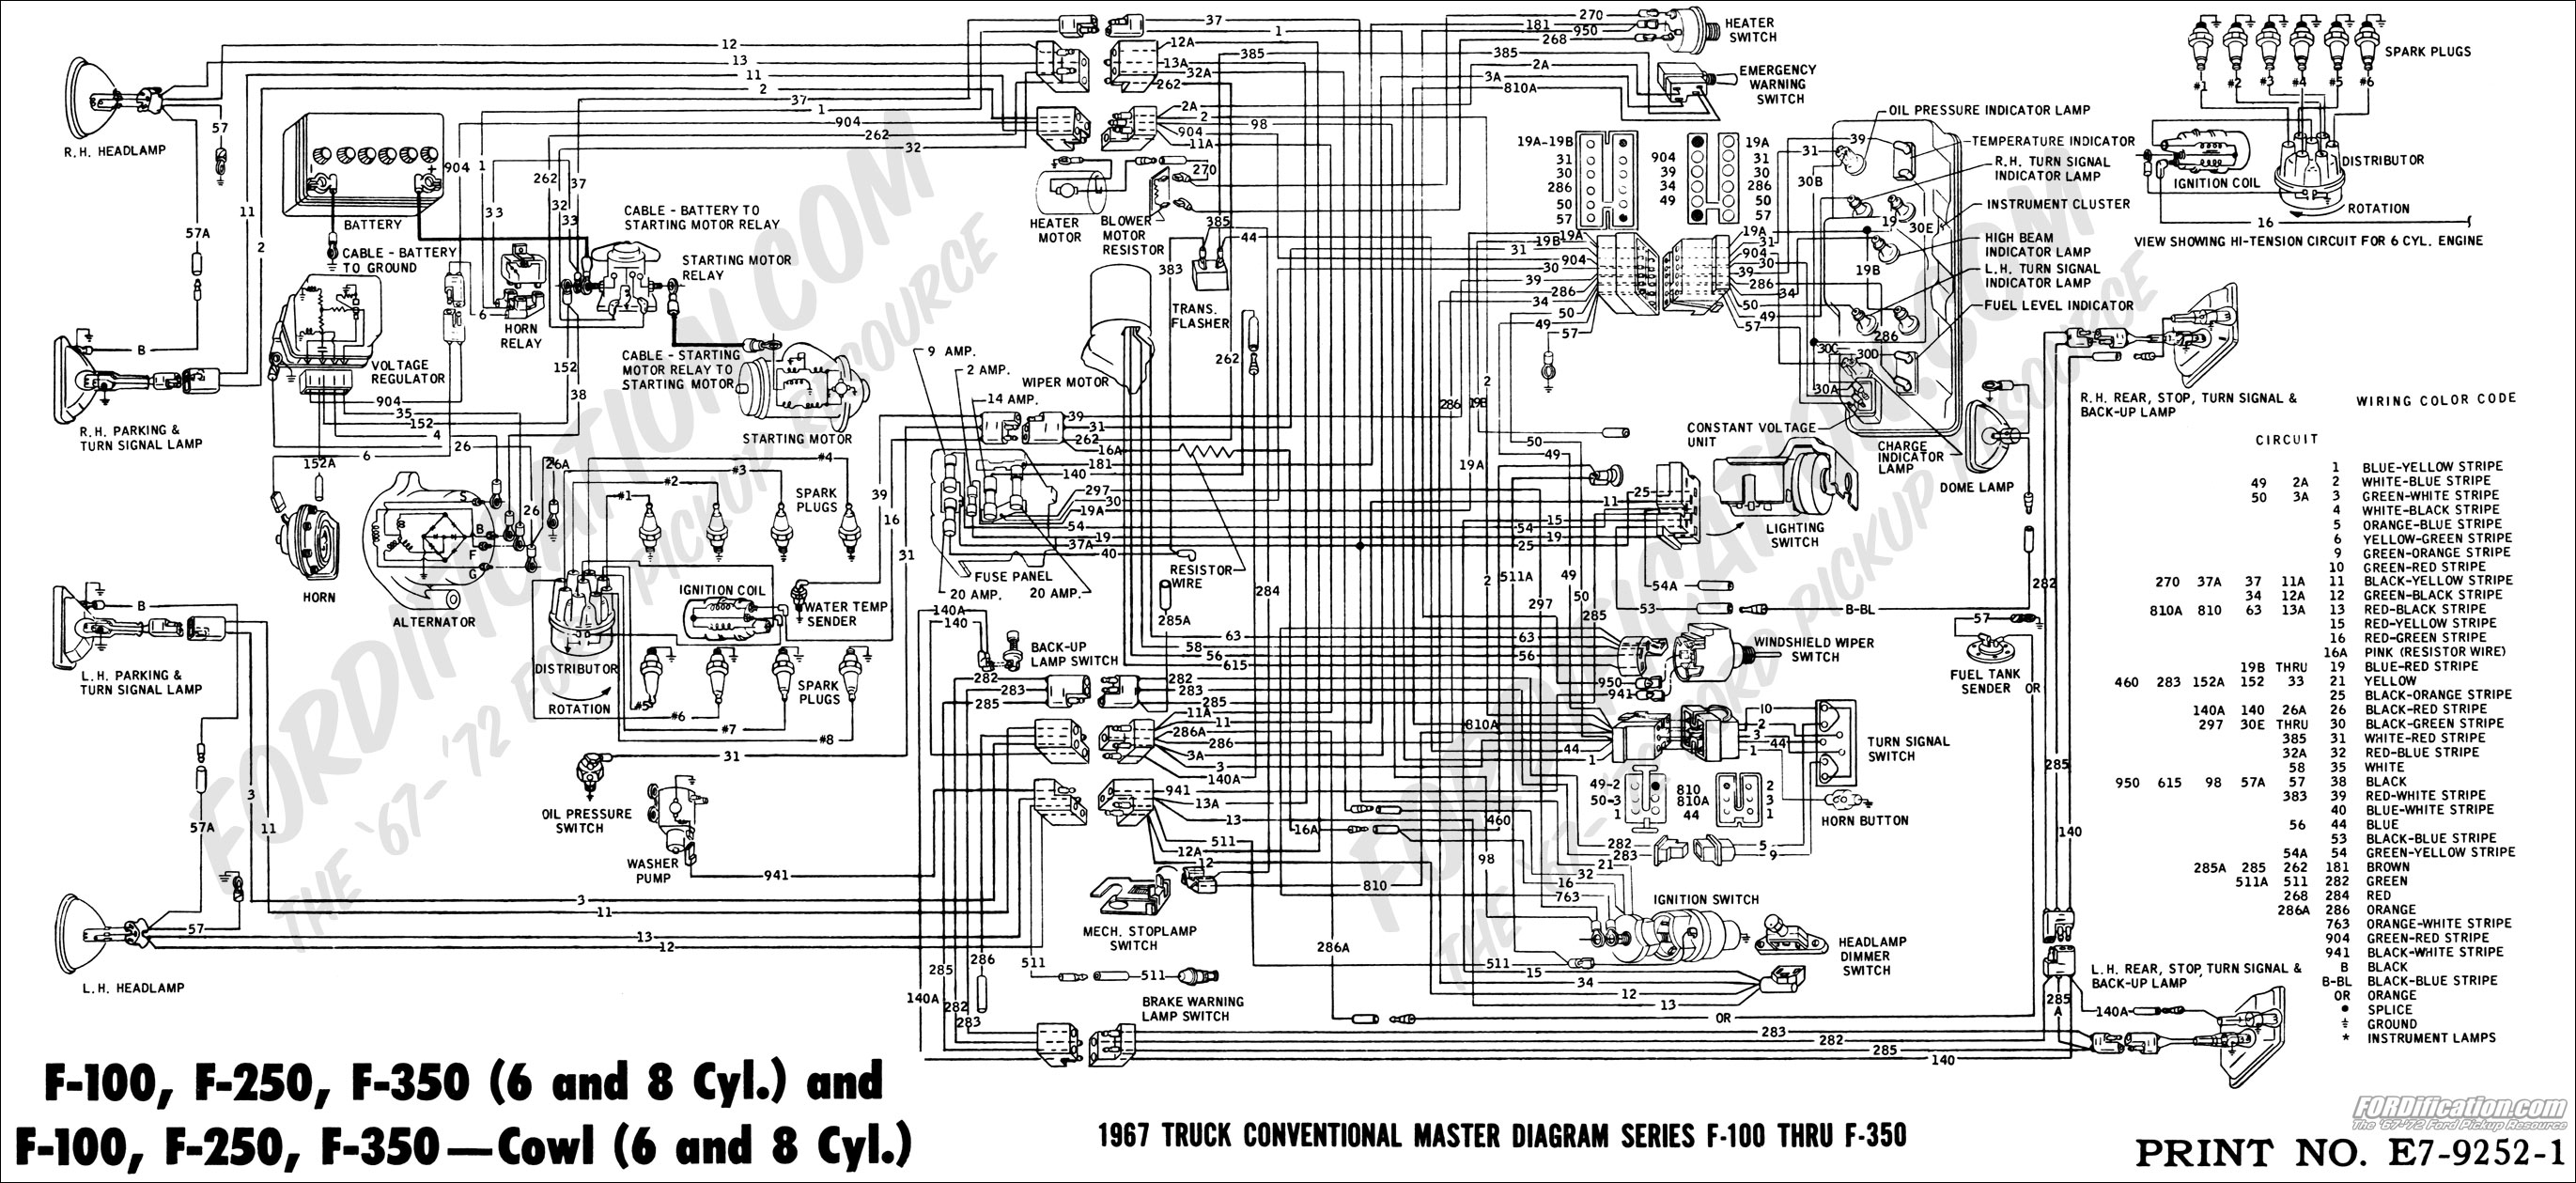 67masterdiagram ford truck technical drawings and schematics section h wiring ford wiring schematics at n-0.co